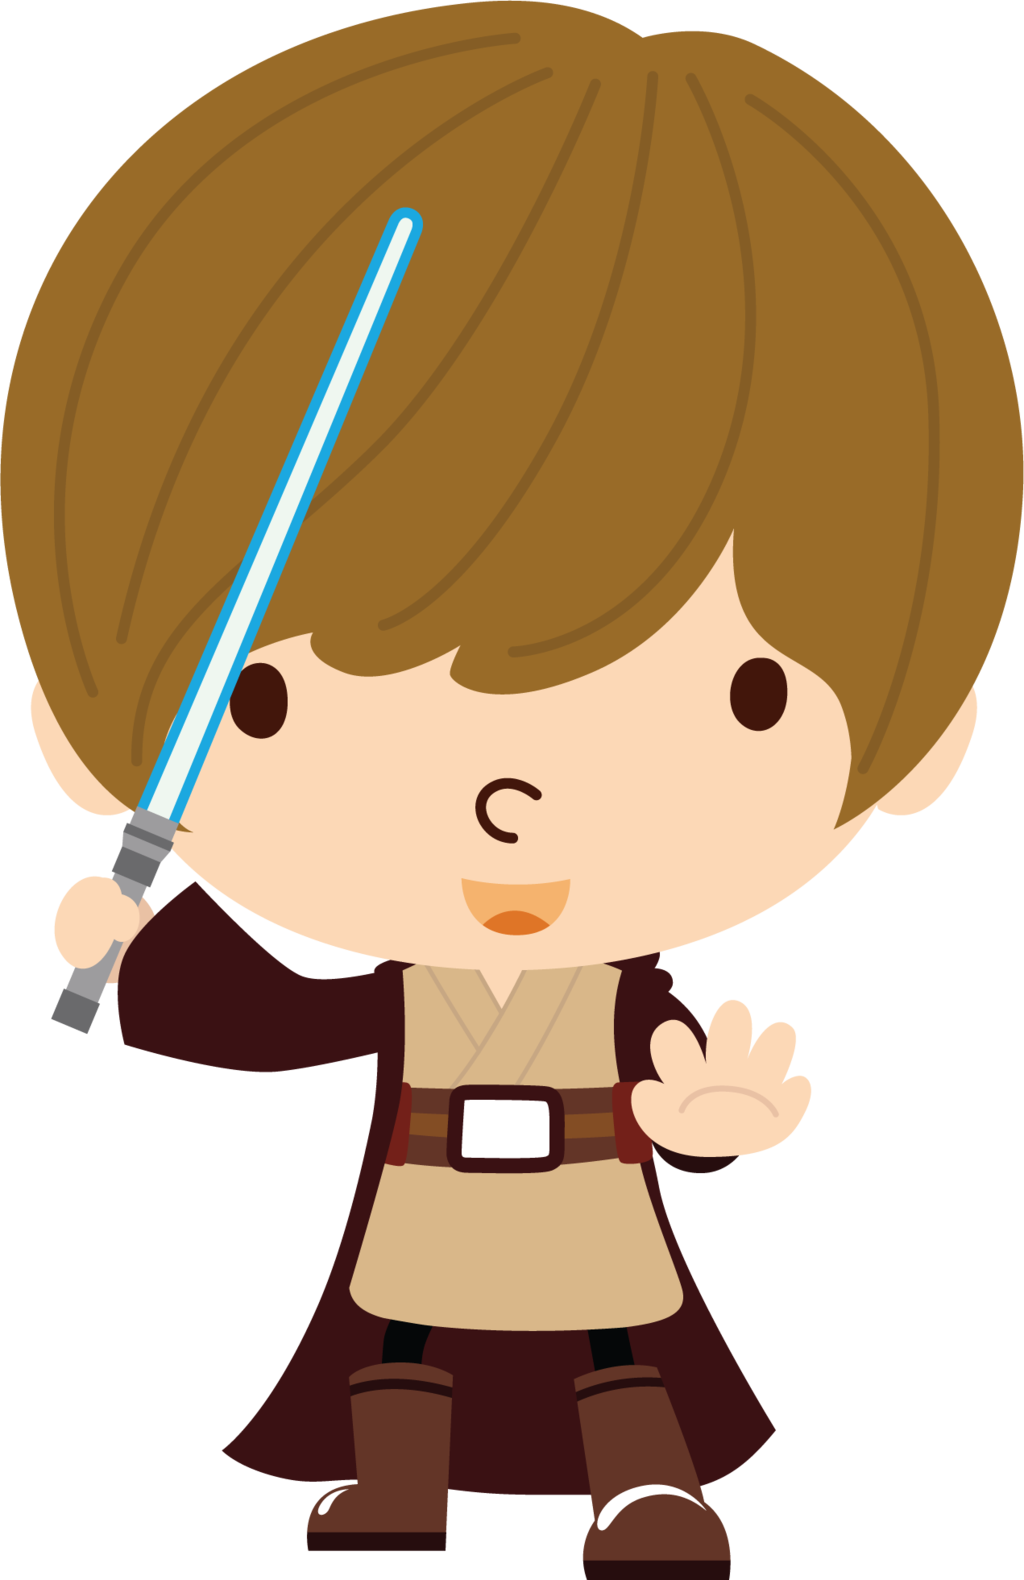 Maters clipart star wars character By Star DeviantArt on Chrispix326